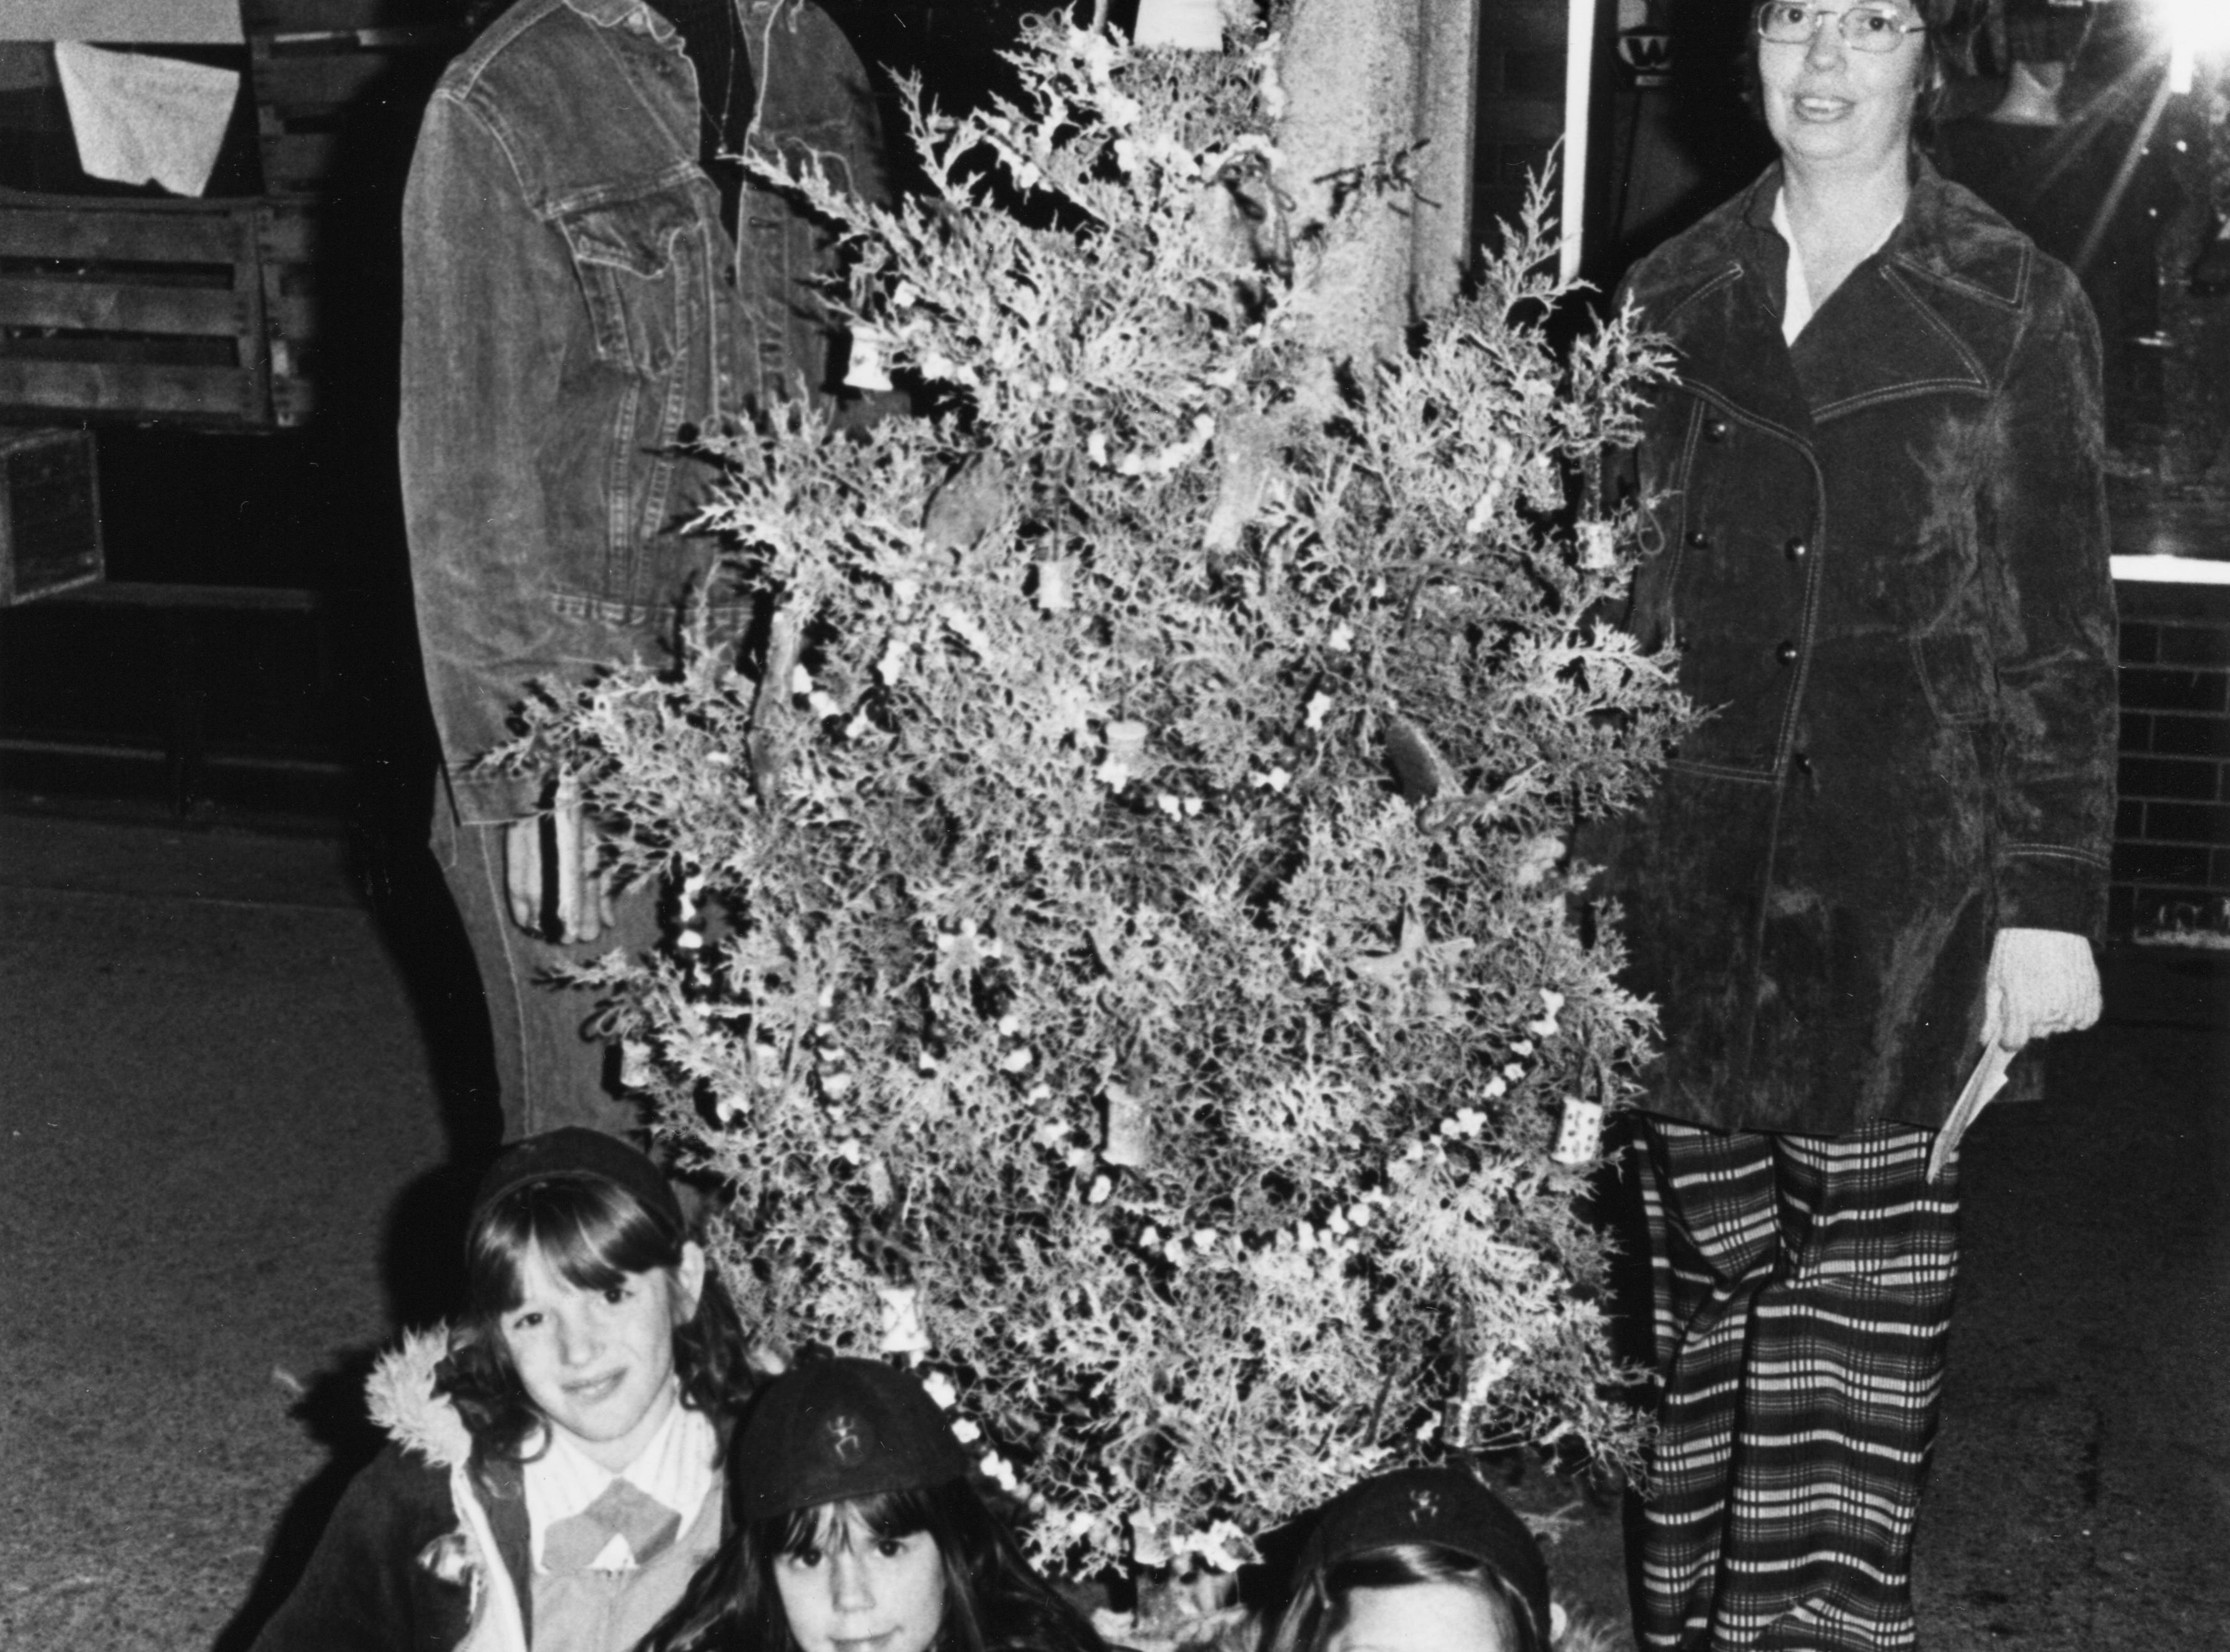 Brownie Troop 387 members Tammy Lynn Shannon, left, Chrise Branch, and Pamela Vaughn show off their first prize entry in the tree decorating contest during the Christmas parade on Dec. 15, 1974. Troop leaders Mrs. Mary Shannon, left, and Mrs. Merle Vaughn are standing.